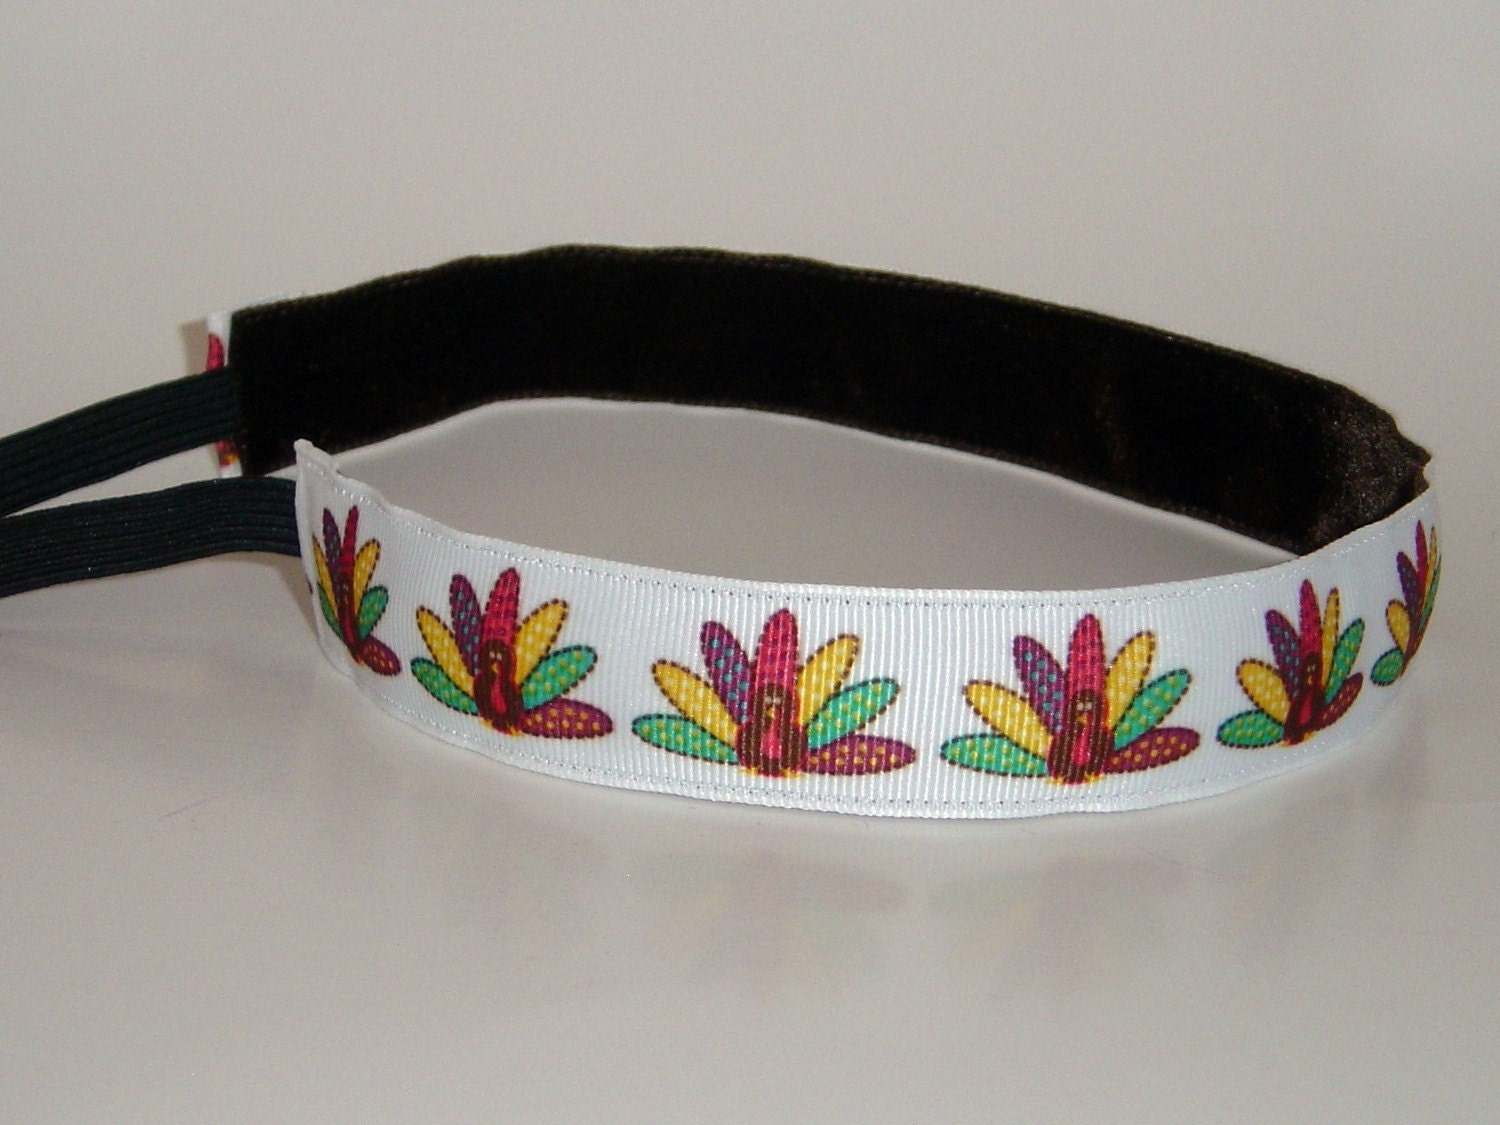 BIC Bands Thin Turkey Run Non-Slip Headband- Proceeds go to CHARITY